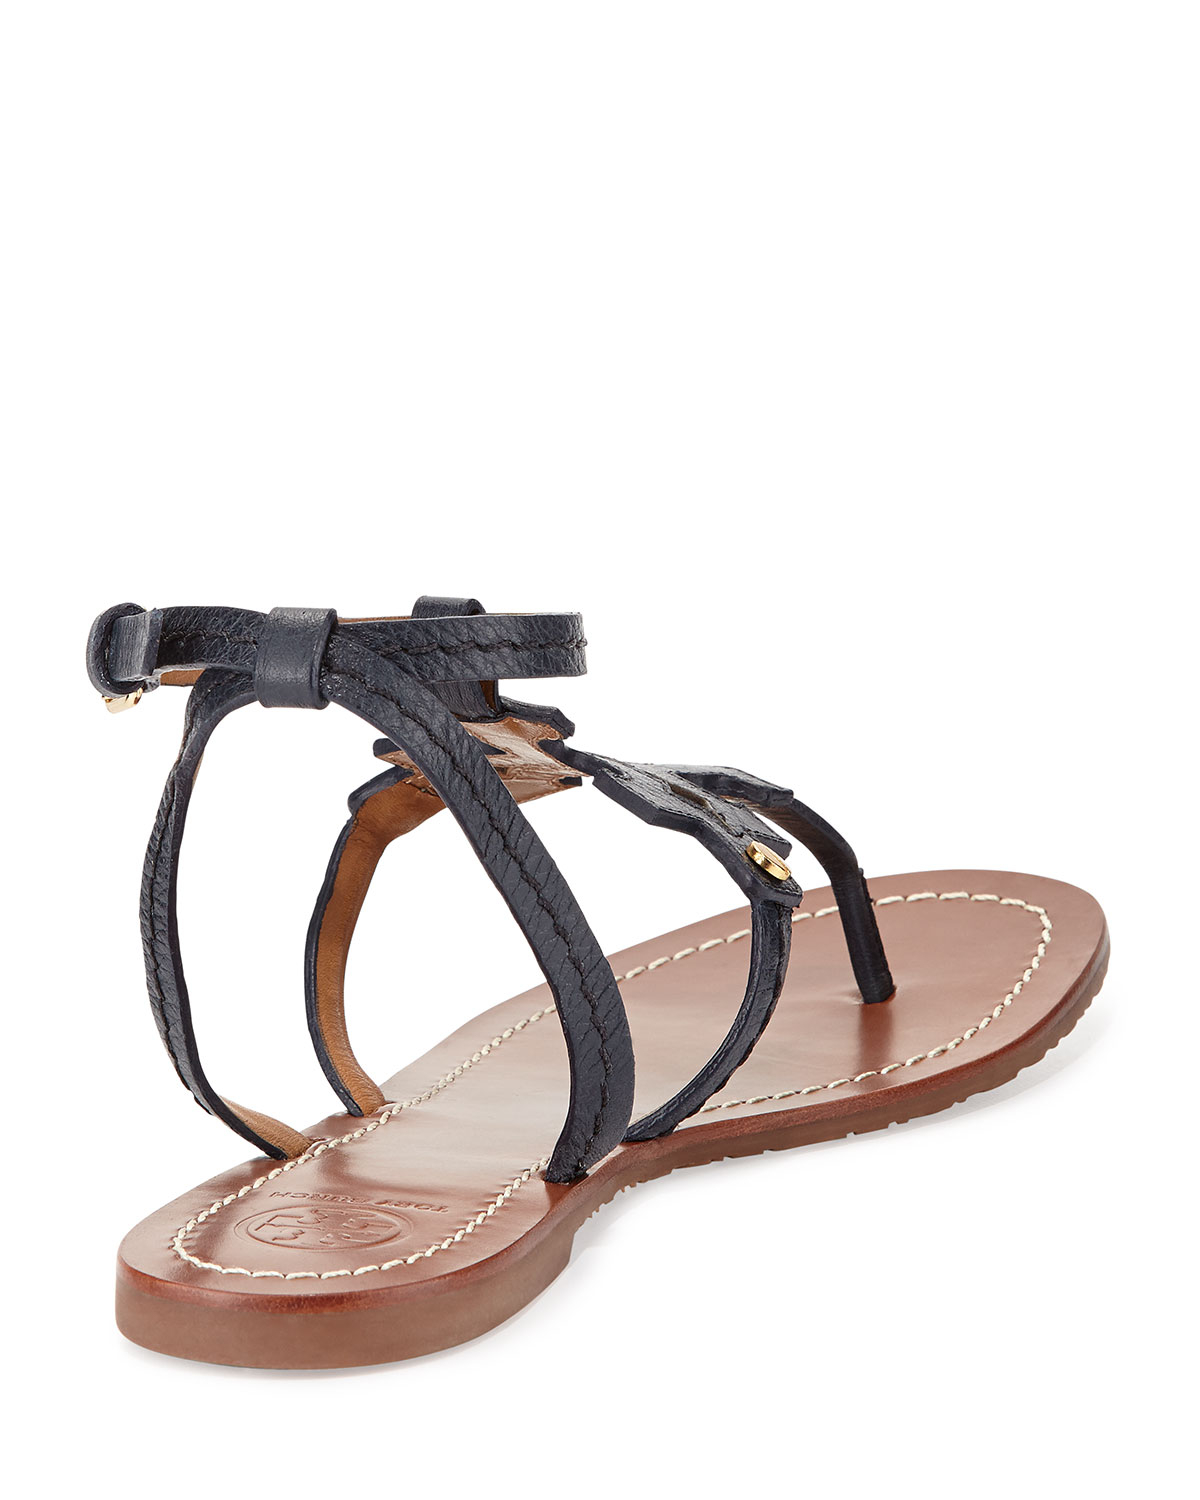 077ab71389ee49 Lyst - Tory Burch Phoebe Leather Flat Sandal in Black